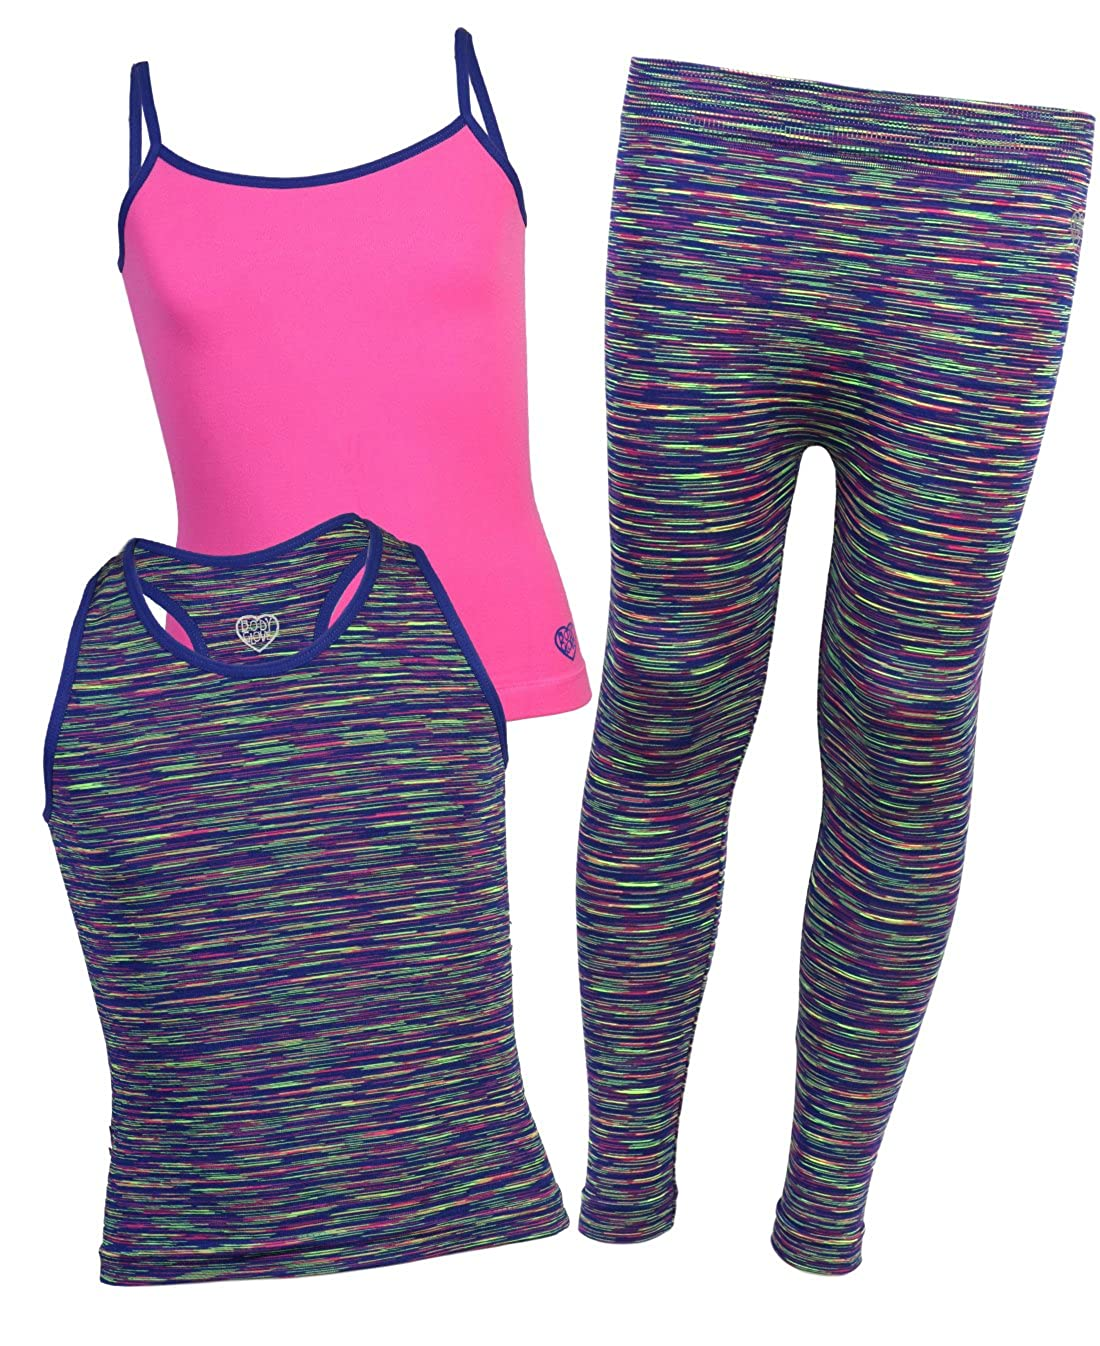 Body Glove Girls 3-Piece Athletic Tank Tops and Leggings Set